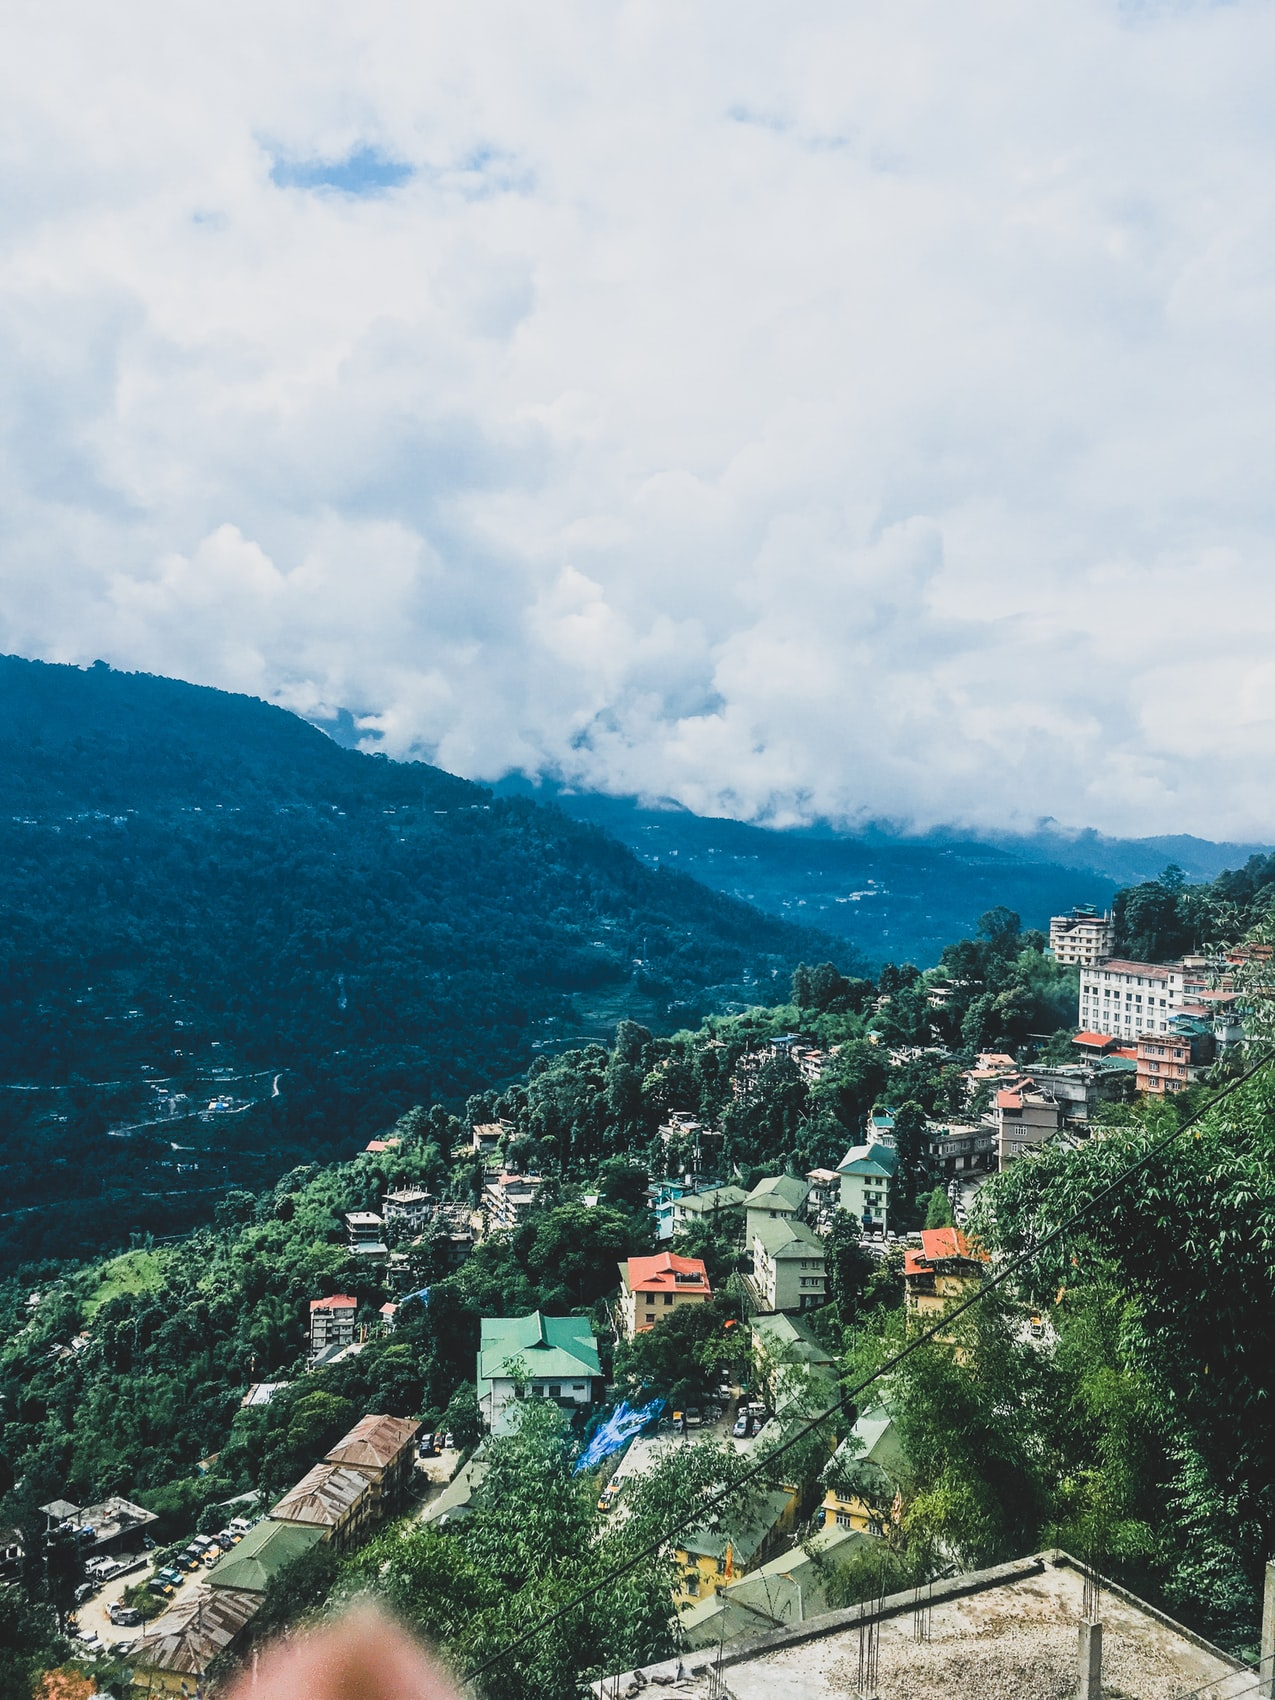 Shillong, the capital of Meghalaya, The Dzükou valley, one of the seven sister states